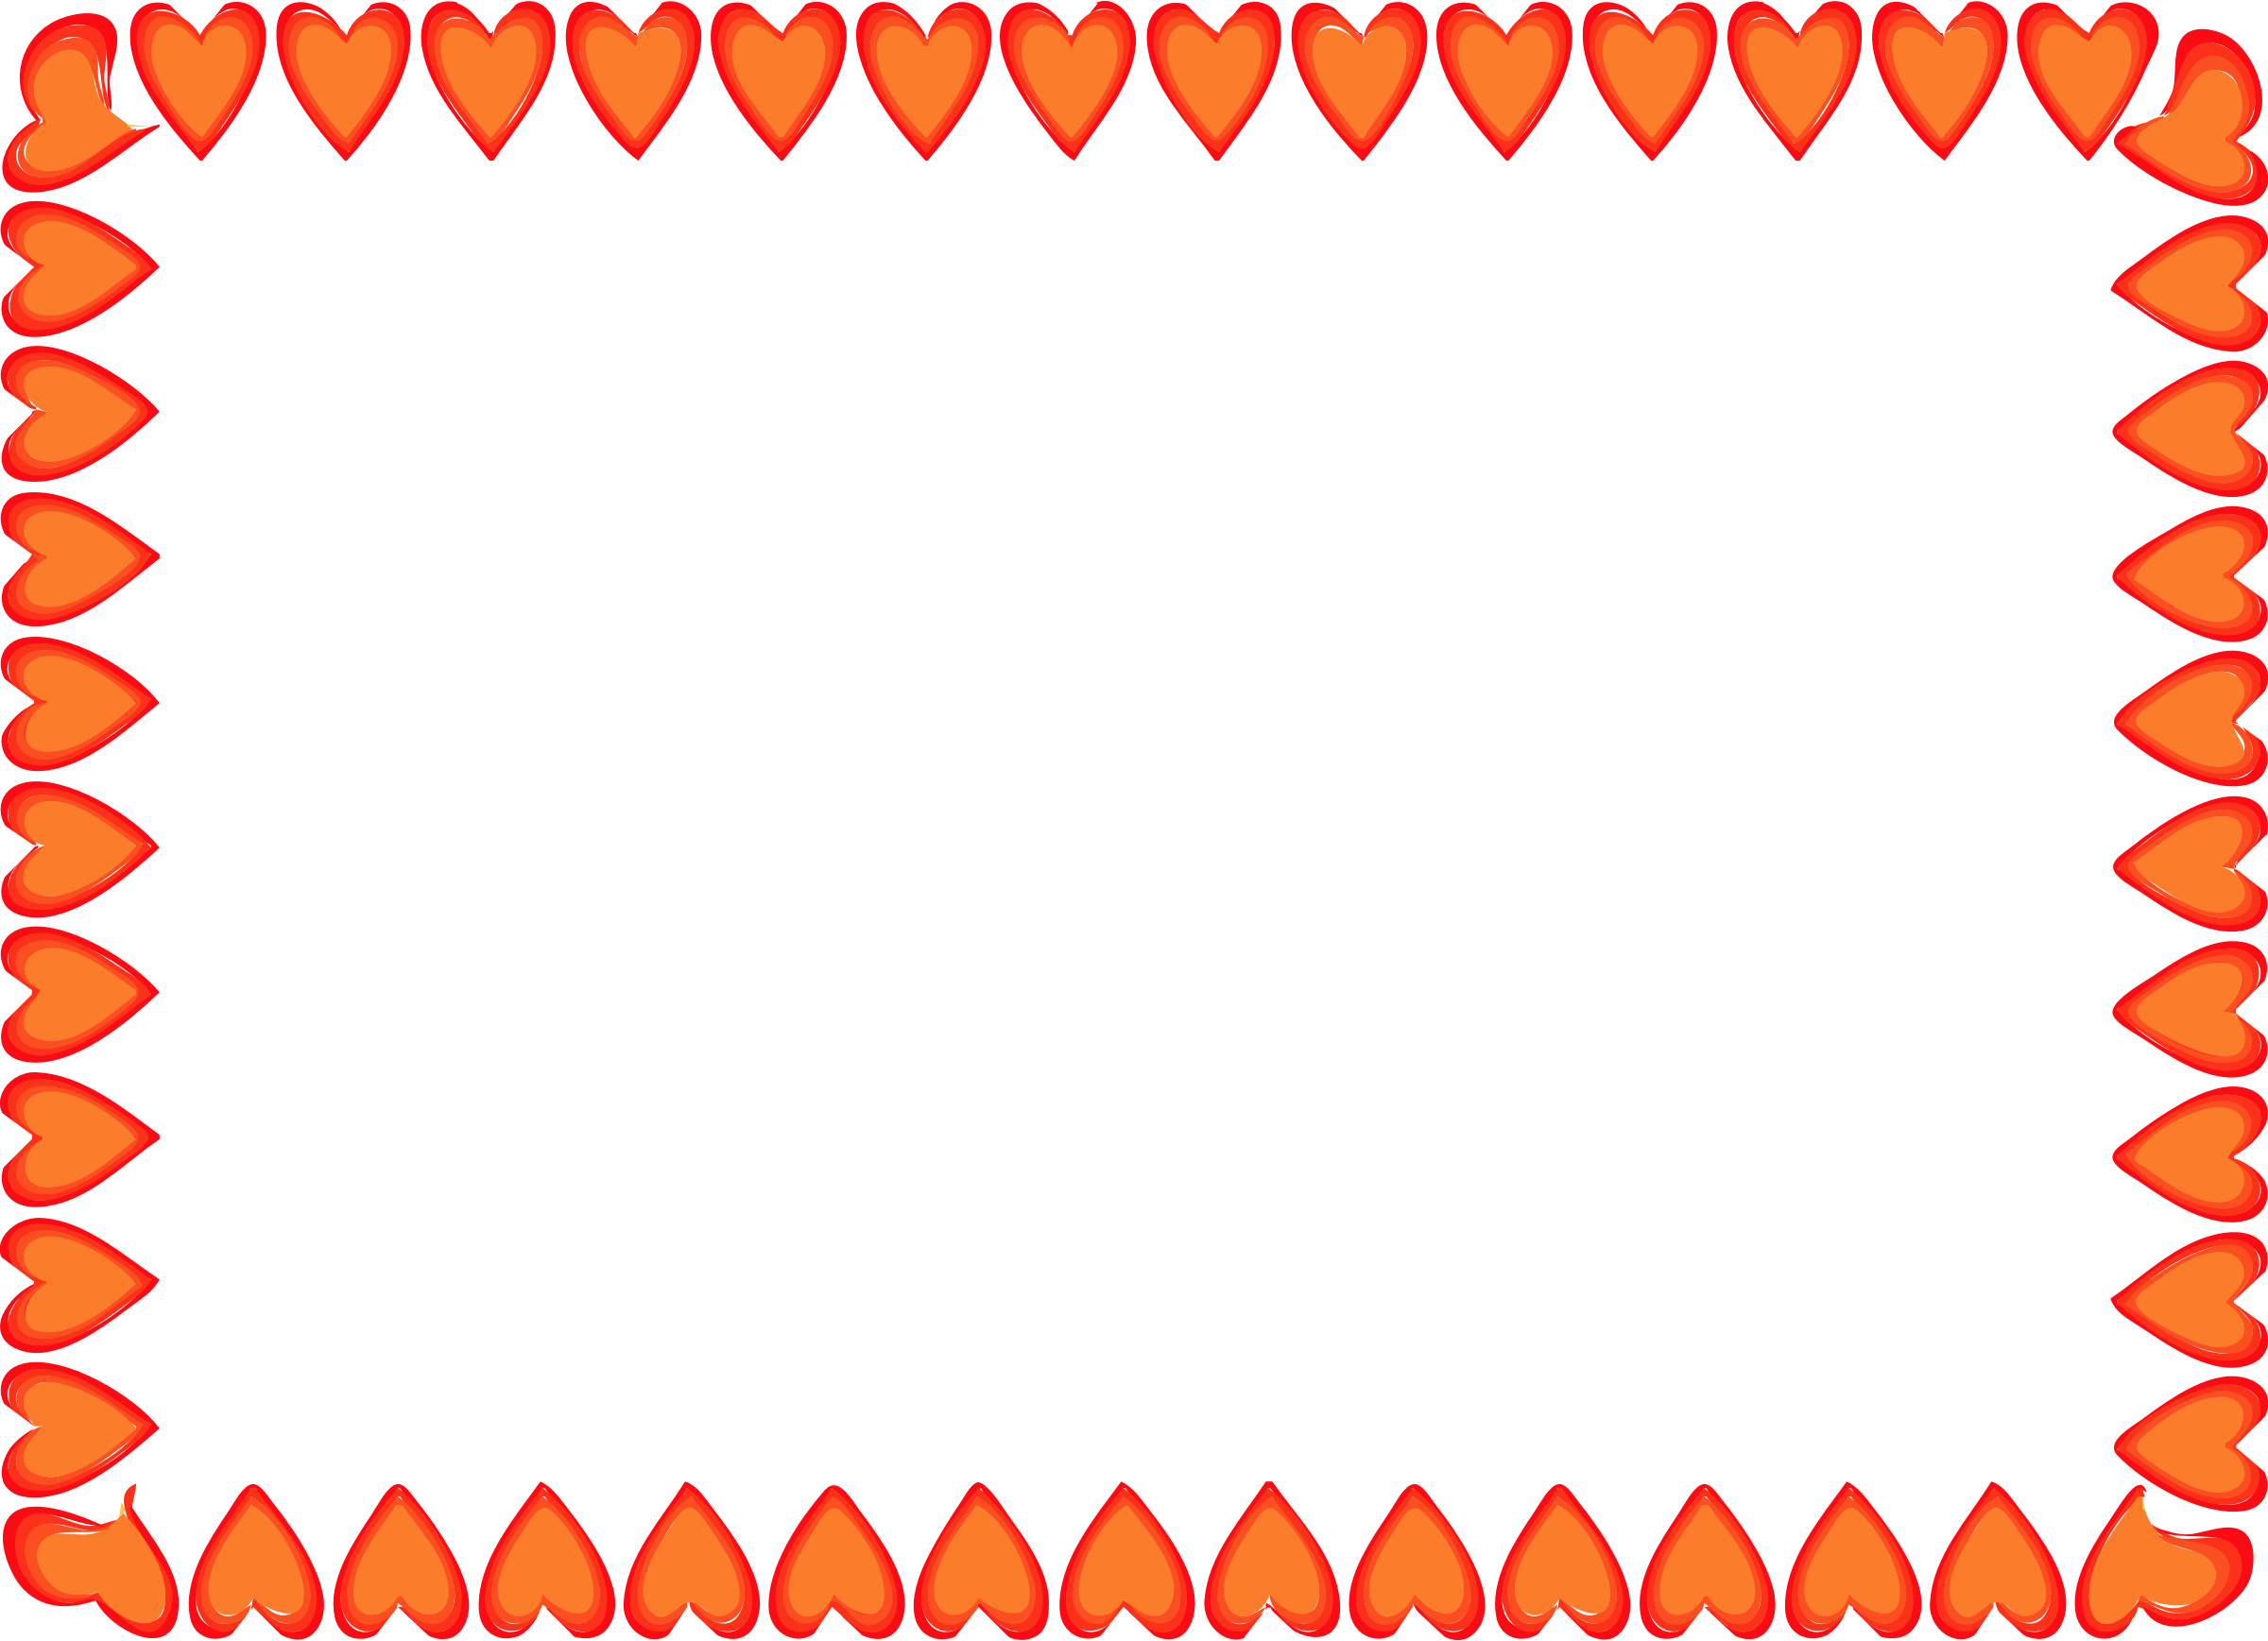 2400x1737 Red Hearts Border By @islandvibz, A Simple Rectangular Border Made